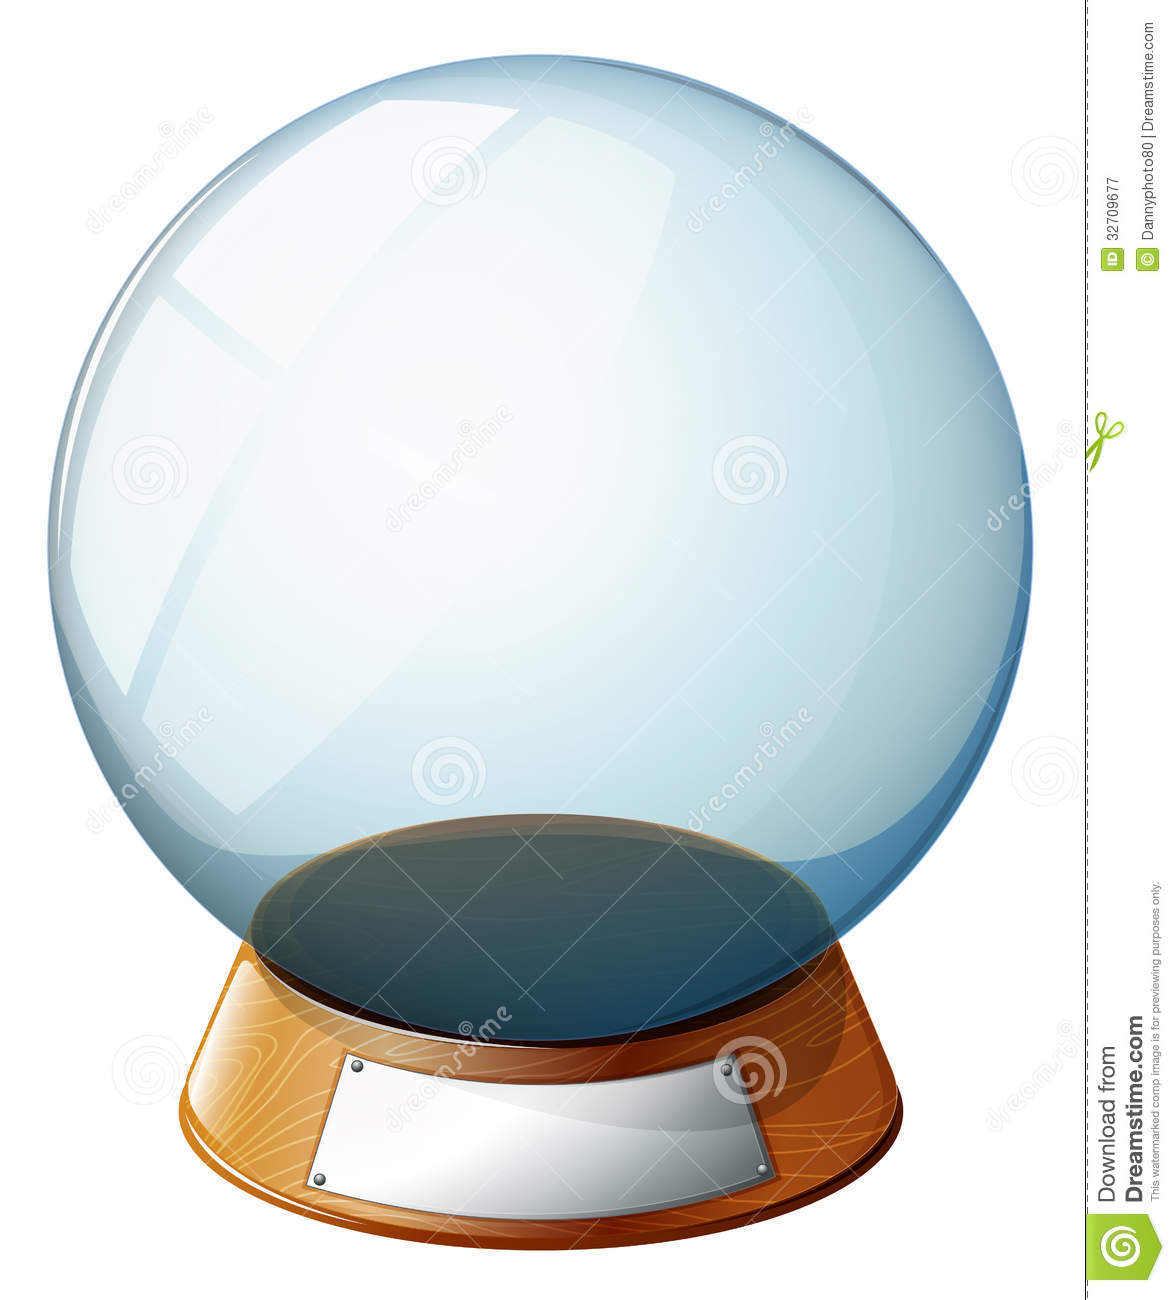 Magic Ball clipart #18, Download drawings